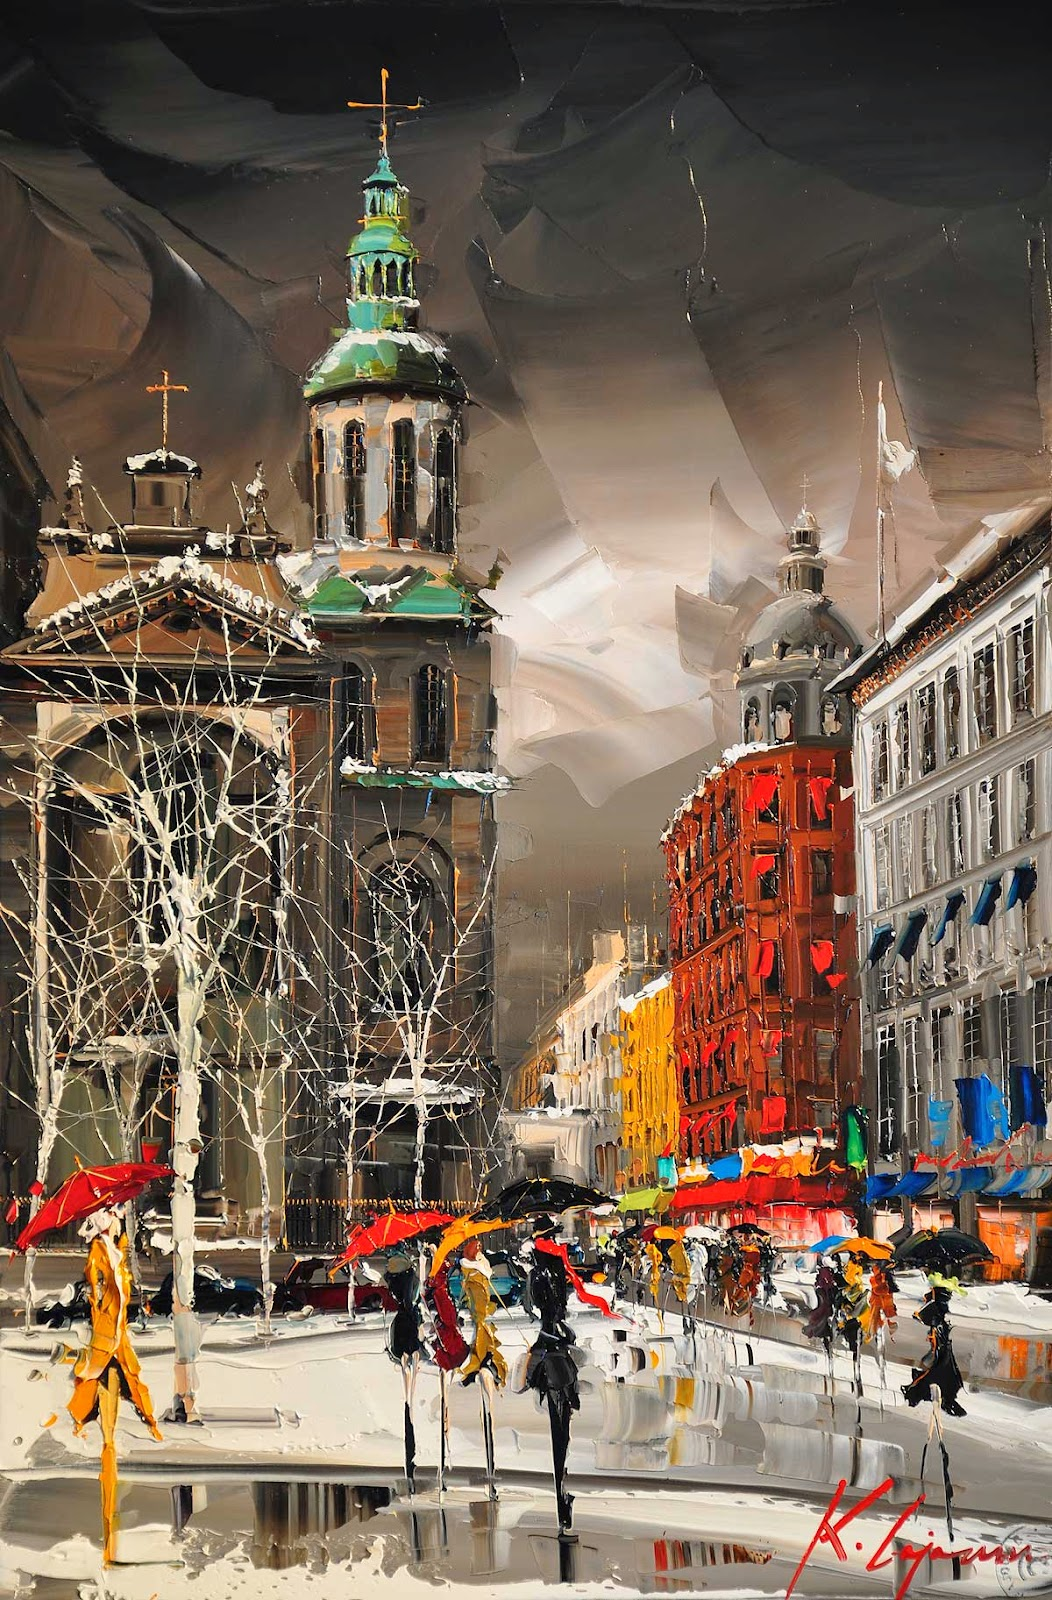 19-Notre-Dame-de-Québec-Kal-Gajoum-Paintings-of-Dream-Like Cities-of-the-World-www-designstack-co